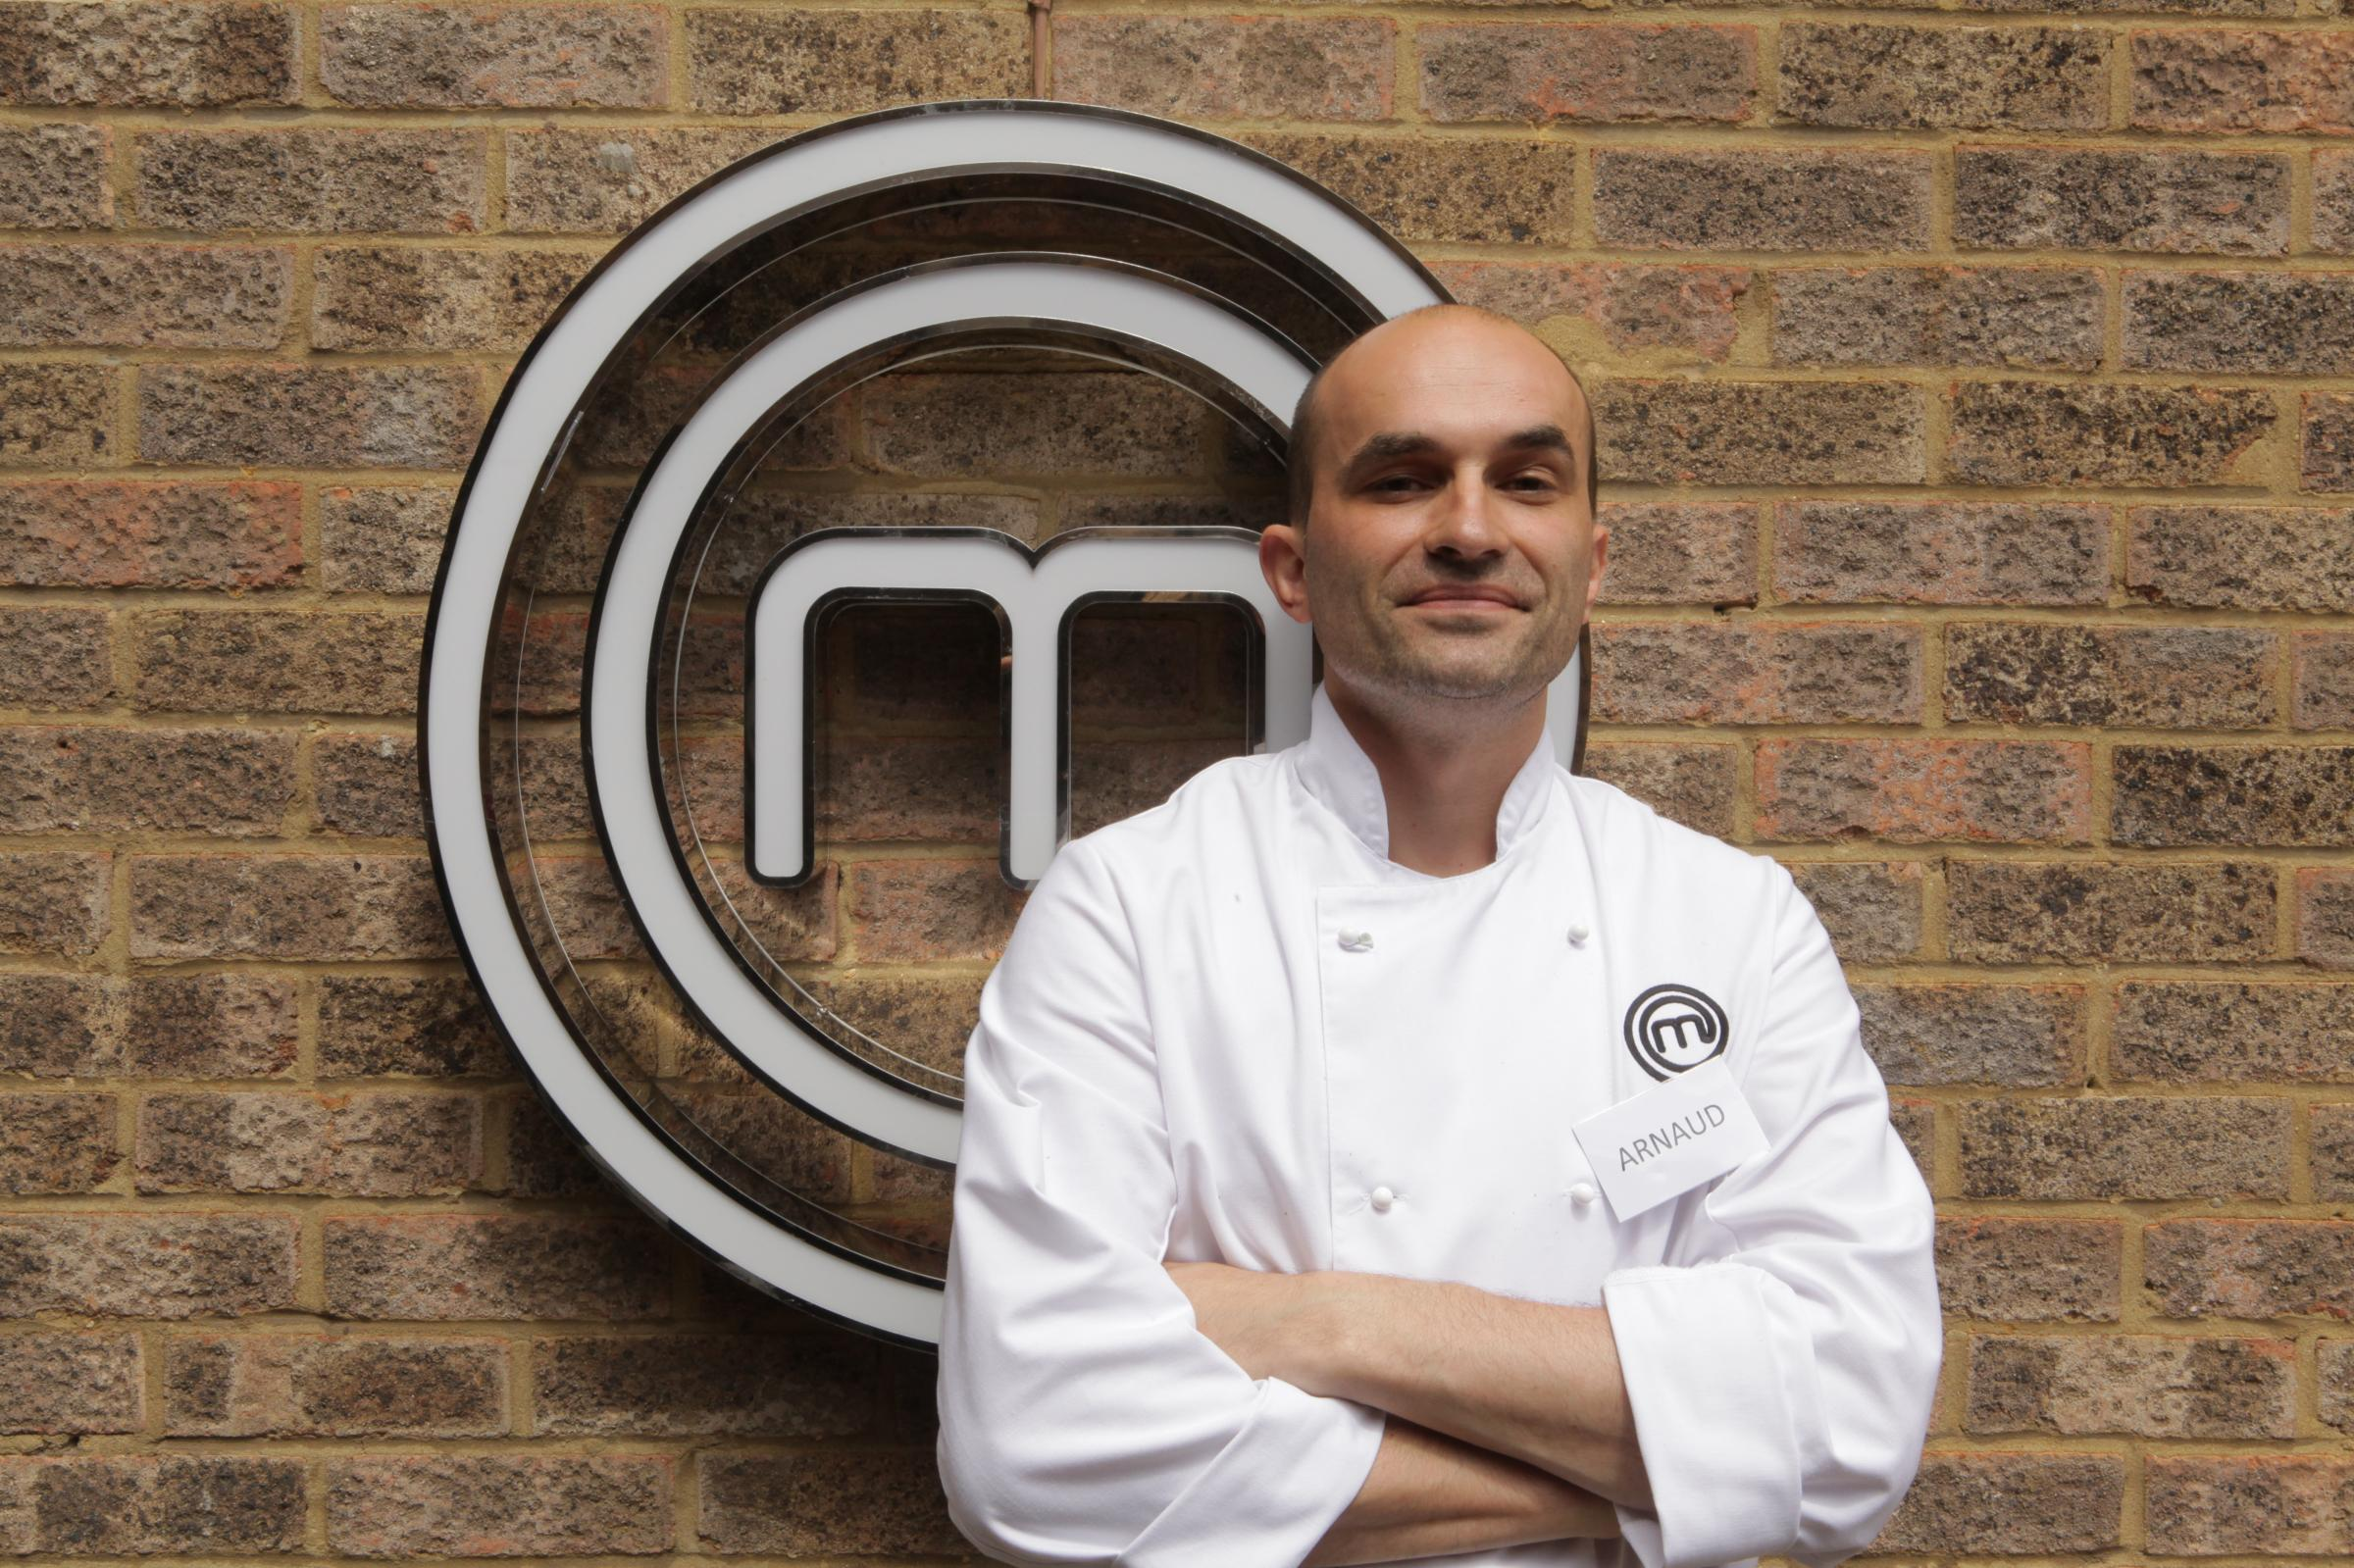 'I would eat pasta every day', says French chef in final ten for MasterChef: The Professionals